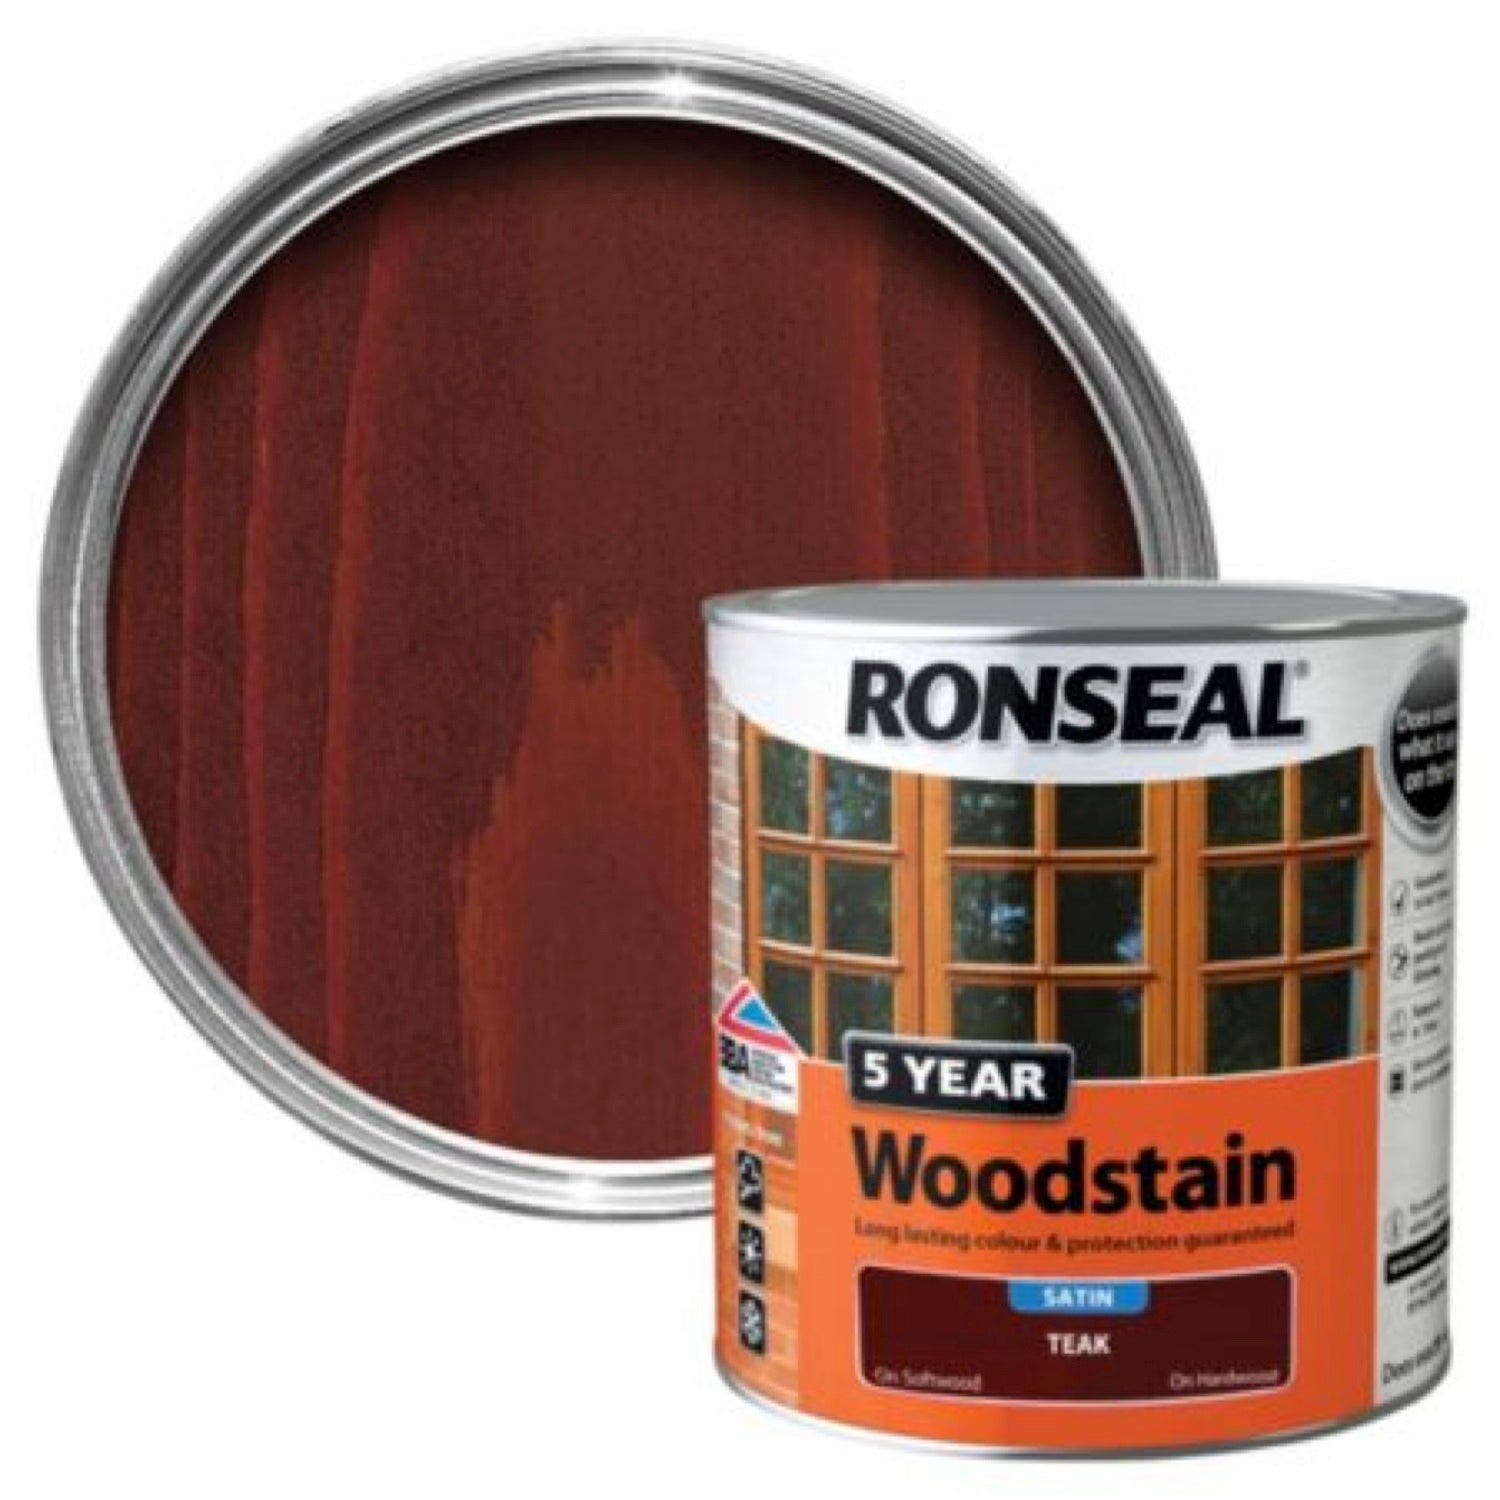 Ronseal 5Yr Woodstain Teak 750ml